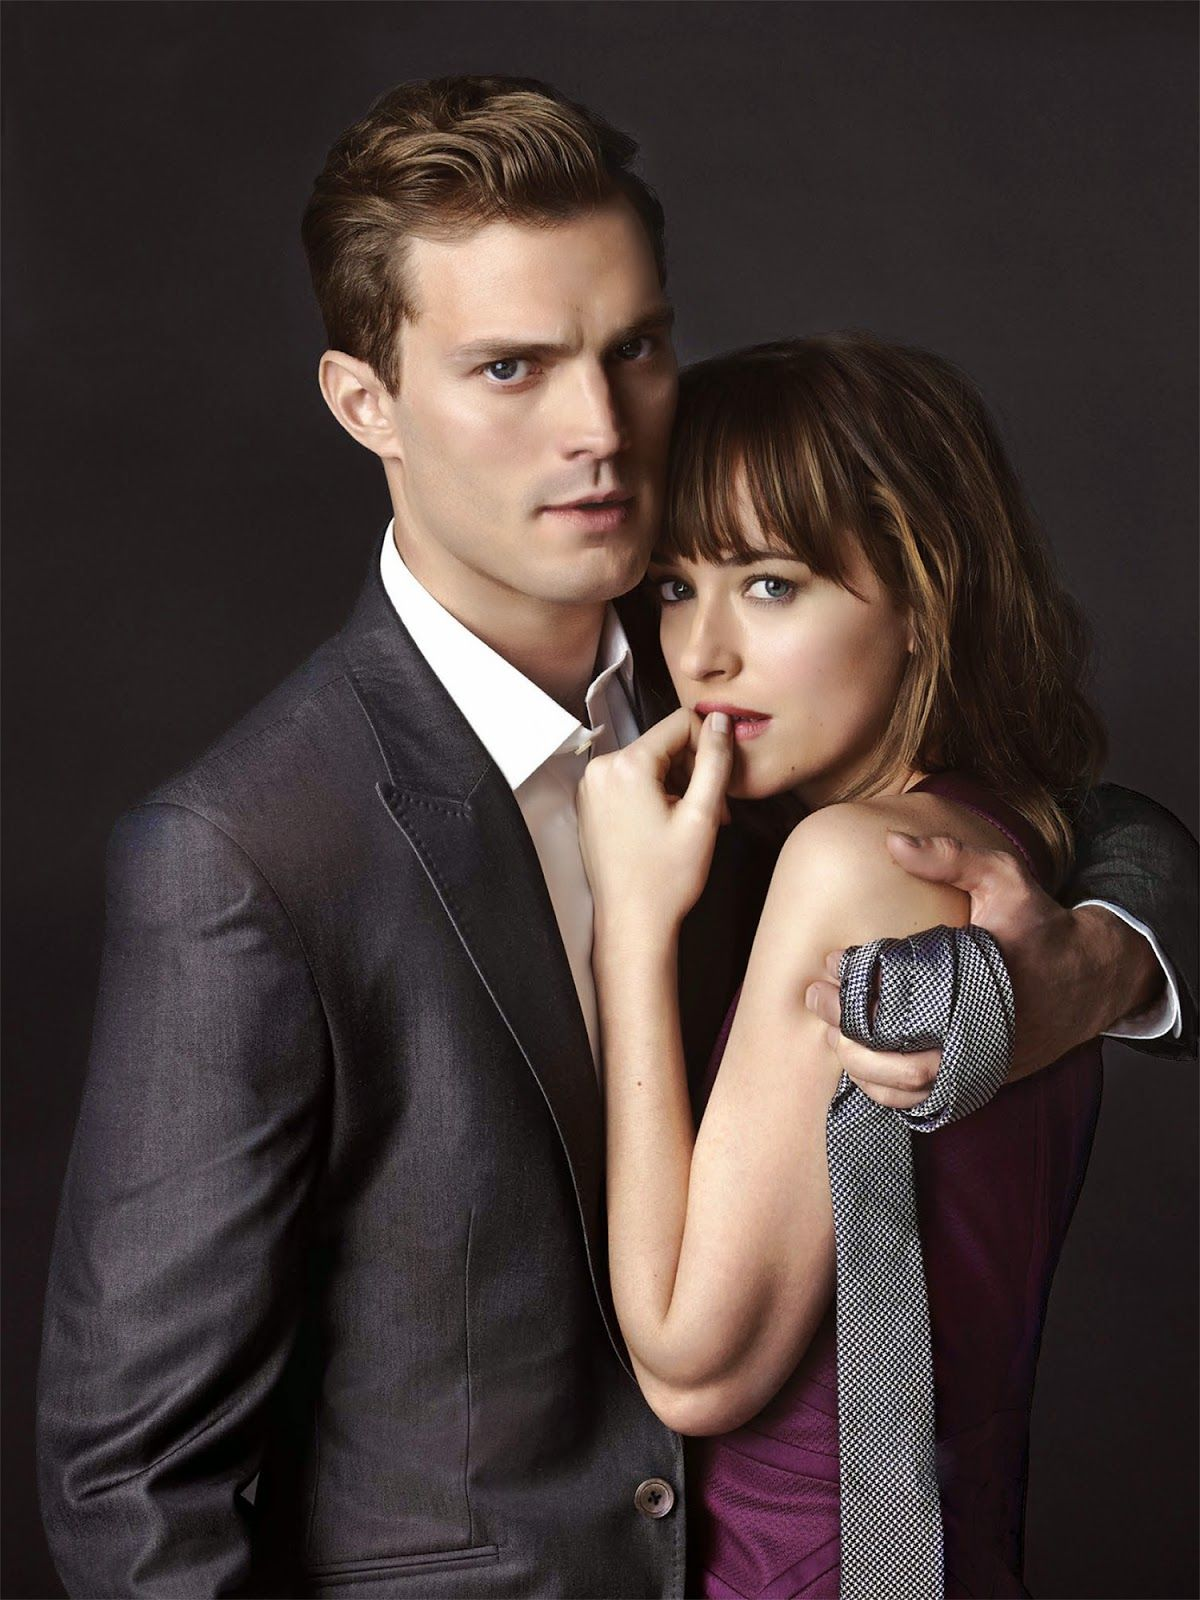 Fifty Shades Updates Hq Untagged Photos Of The Fifty Shades Of Grey Entertainment Weekly Photoshoot Shades Of Grey Movie Shades Of Grey Fifty Shades Of Grey